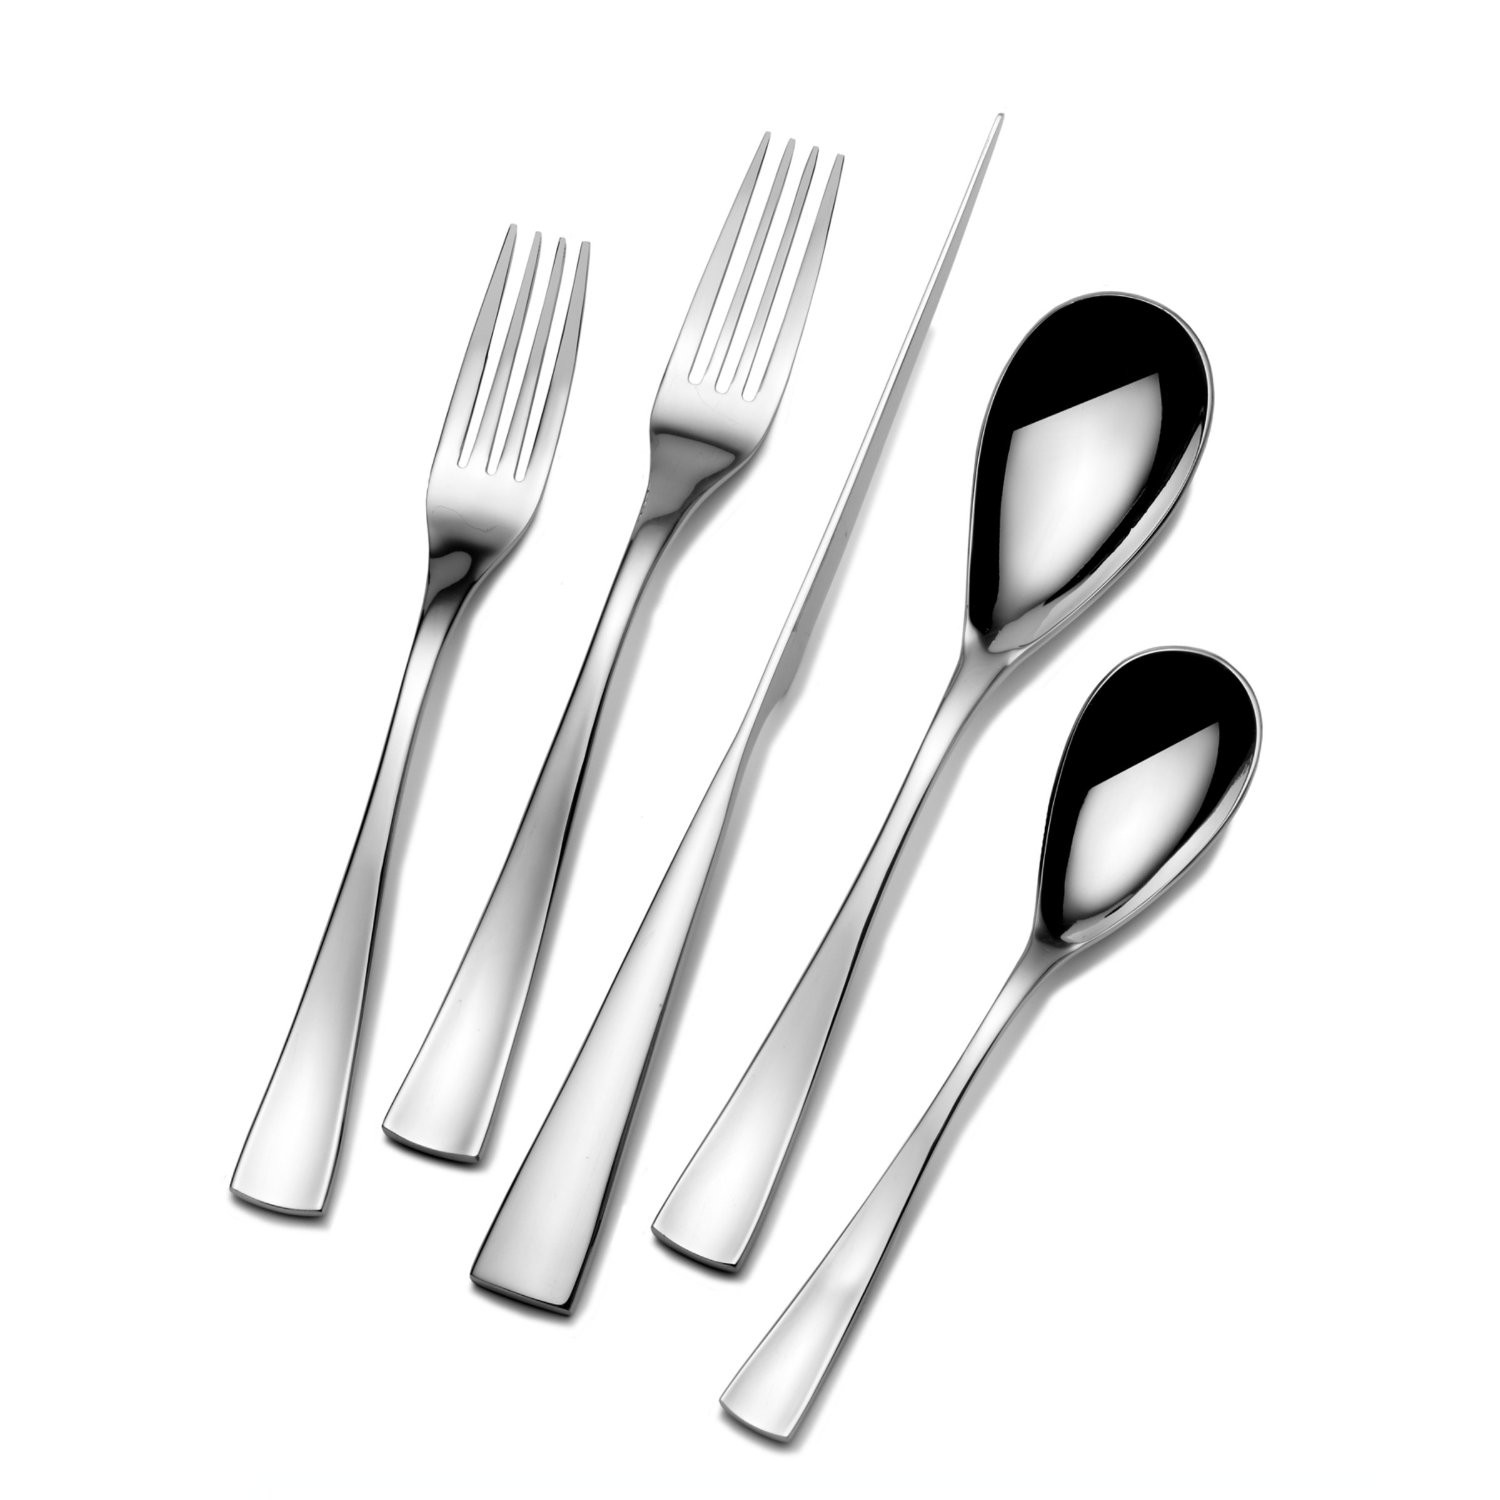 Beautiful towle flatware 5 piece stainless steel flatware set for serveware ideas